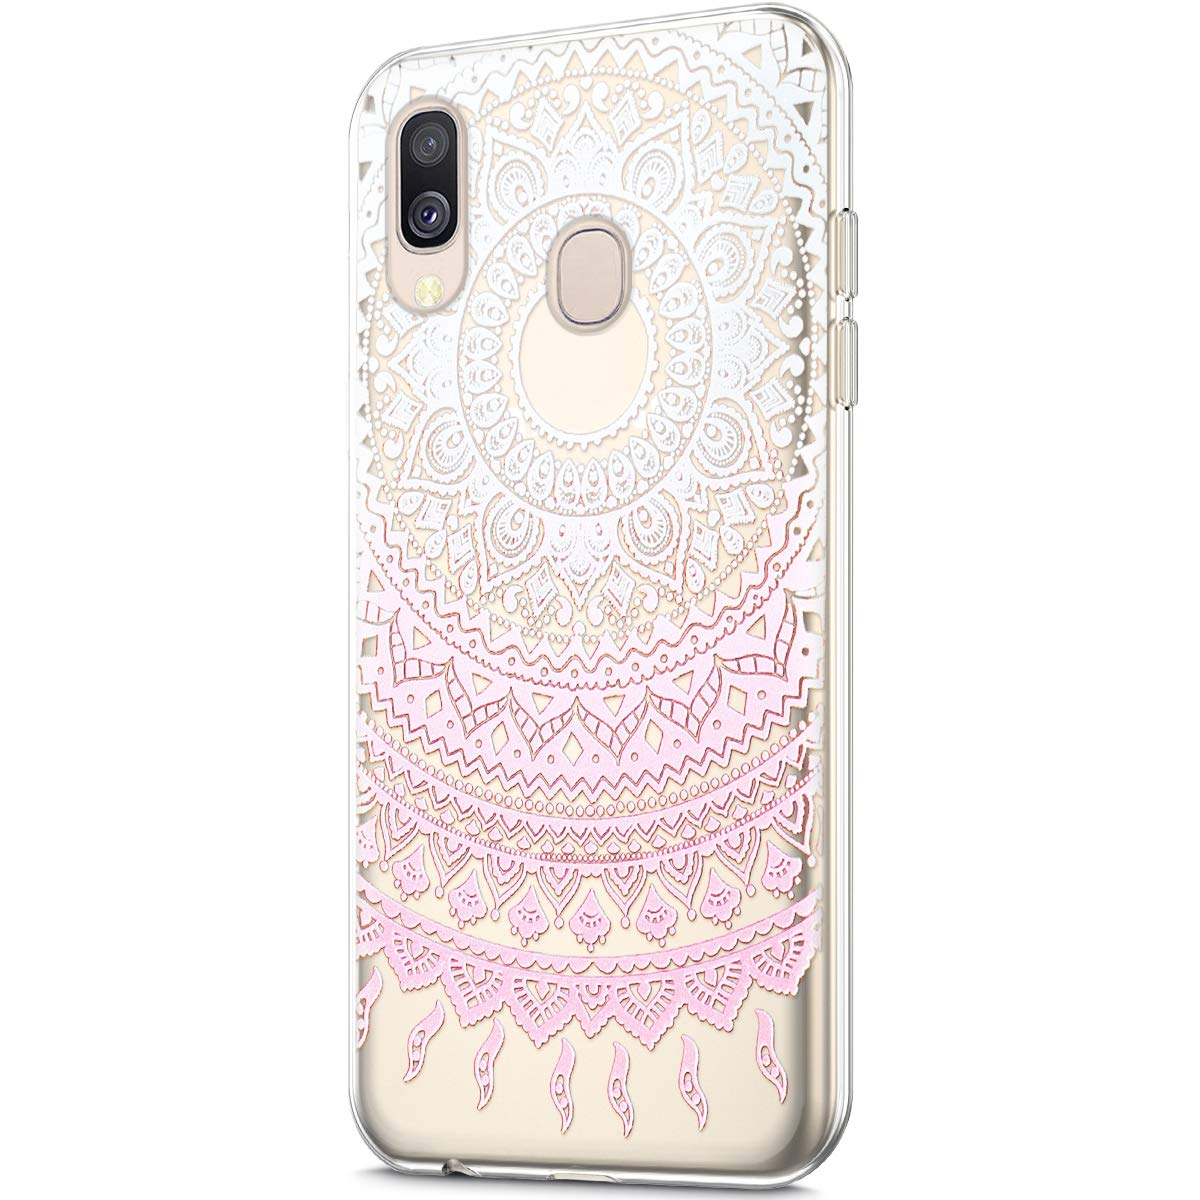 QPOLLY Cover Trasparente Compatibile con Samsung Galaxy A40 Custodia in Silicone Gel Morbida Clear Cristallo Colorata Fiori Animali Design Ultra Sottile TPU Gomma Antiurto Protezione Cover,#5